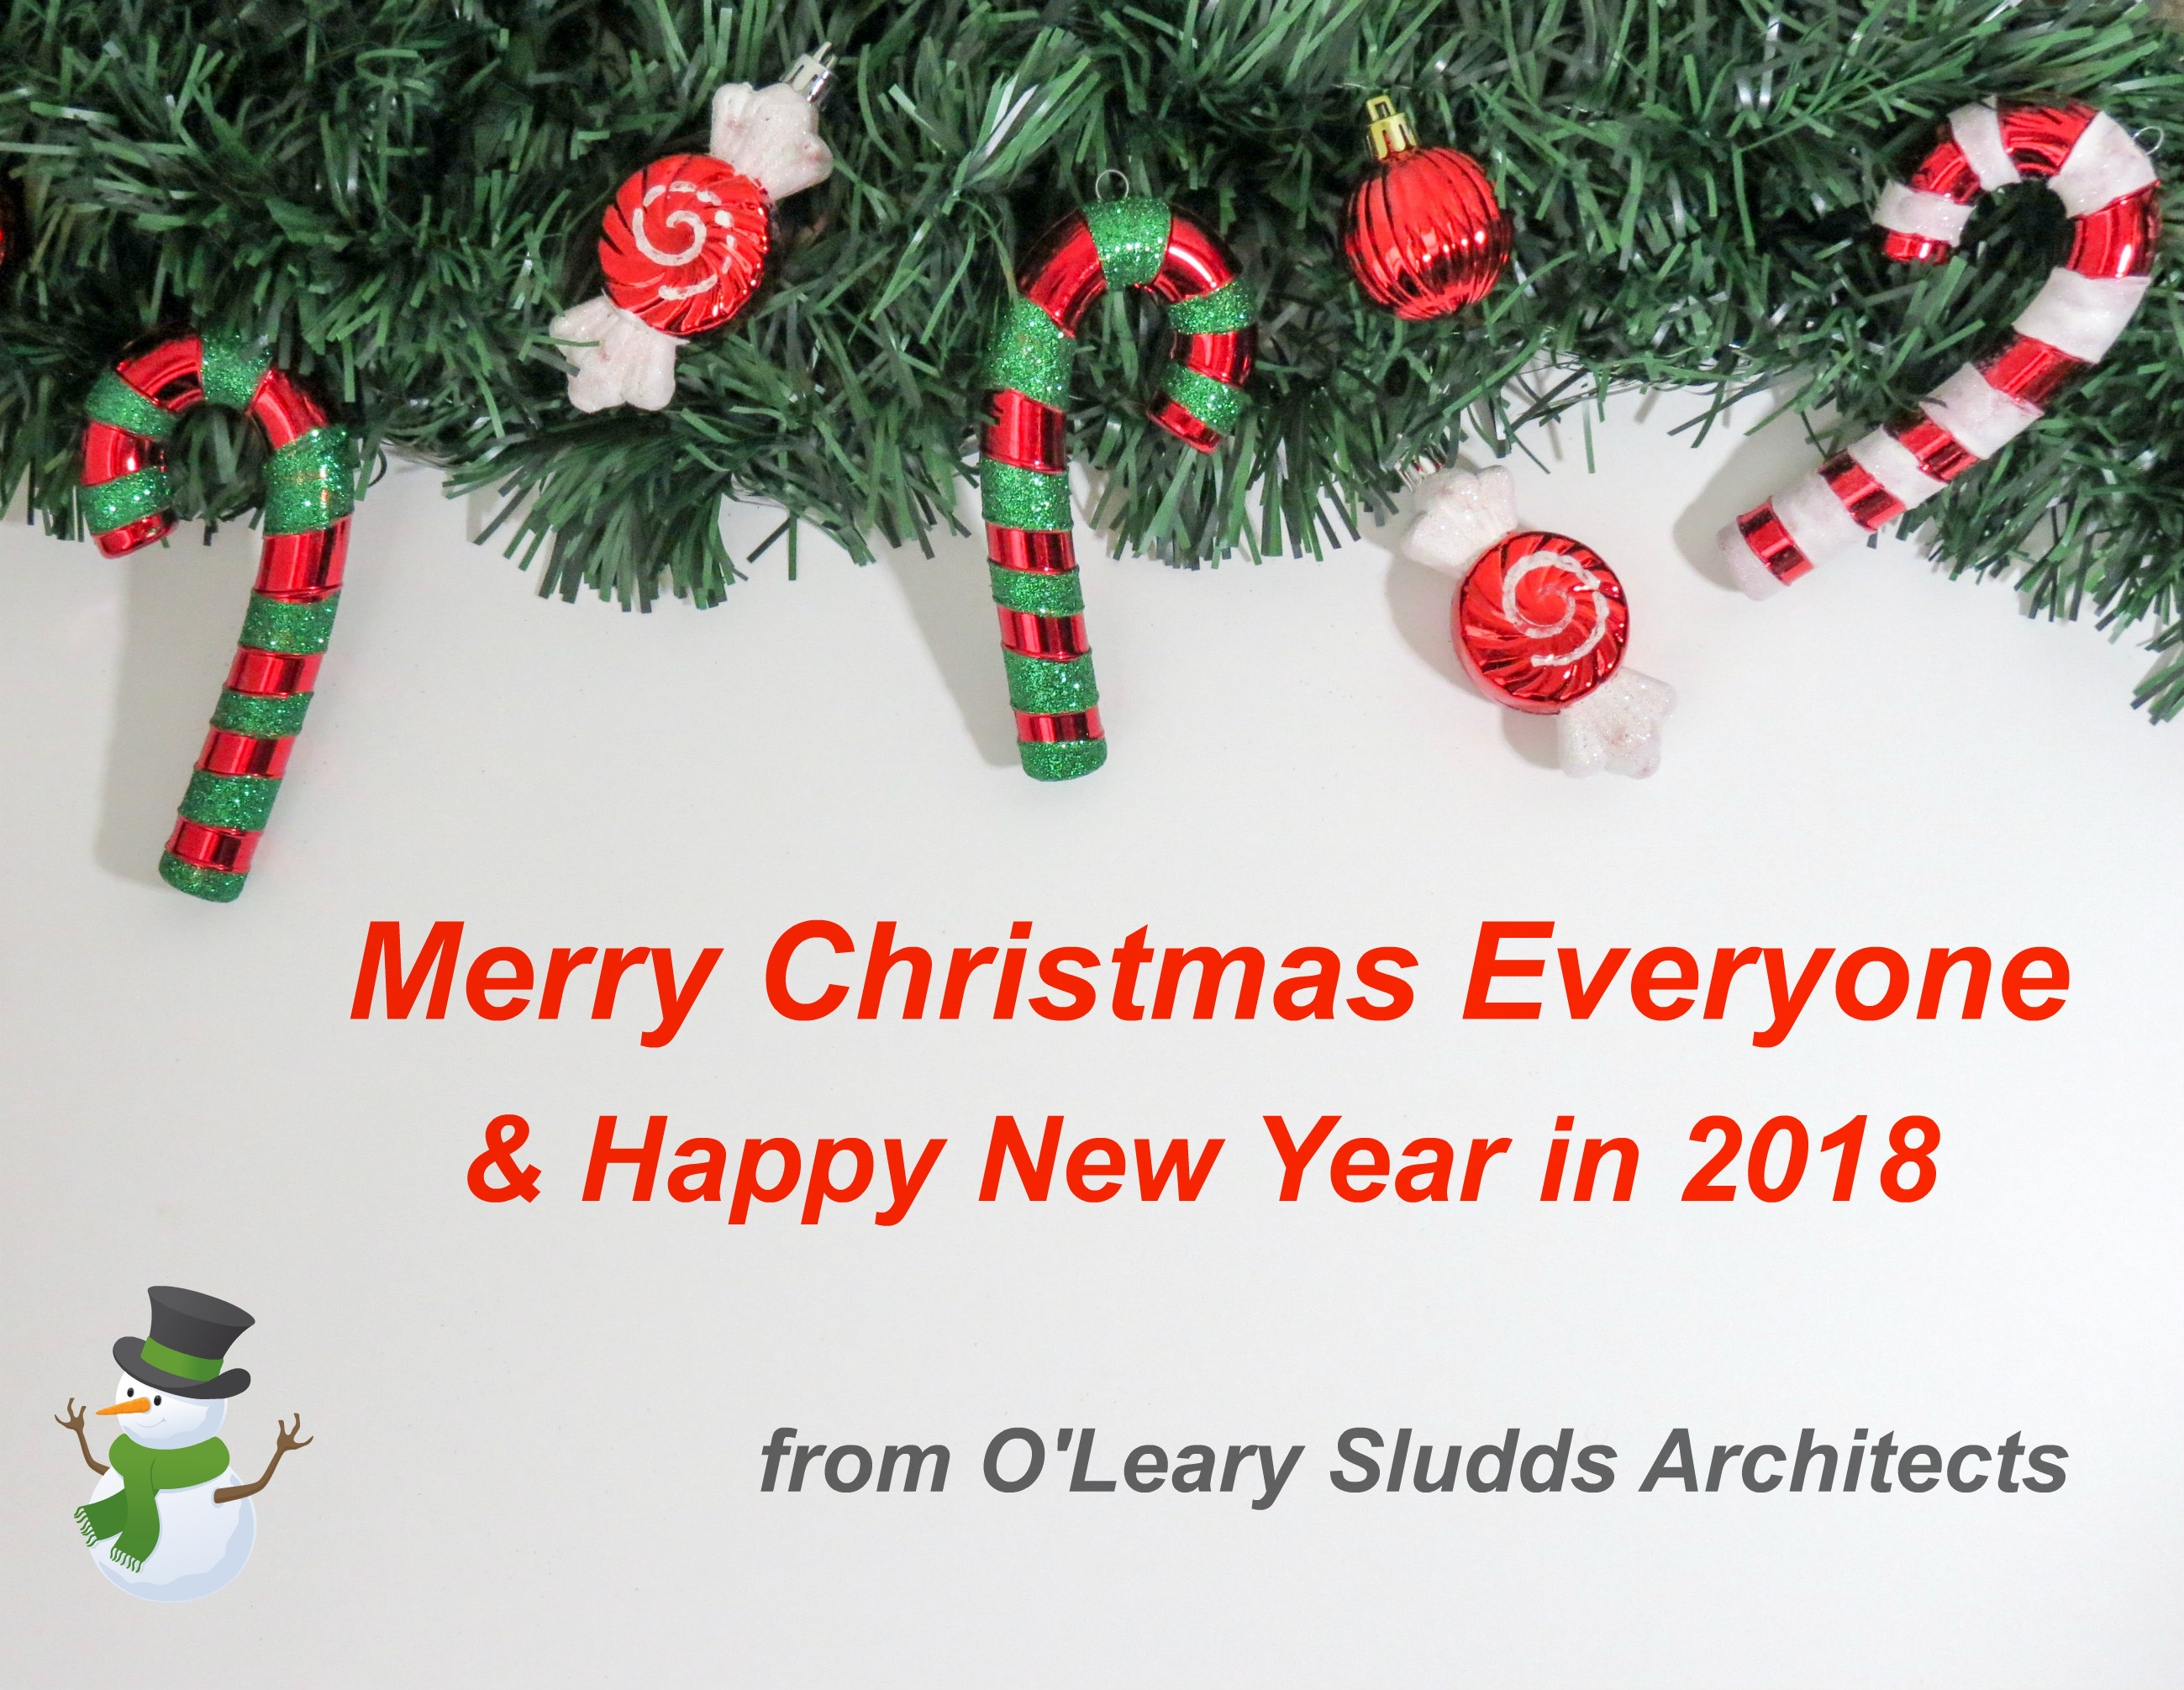 Christmas 2017 Oleary Sludds Architects